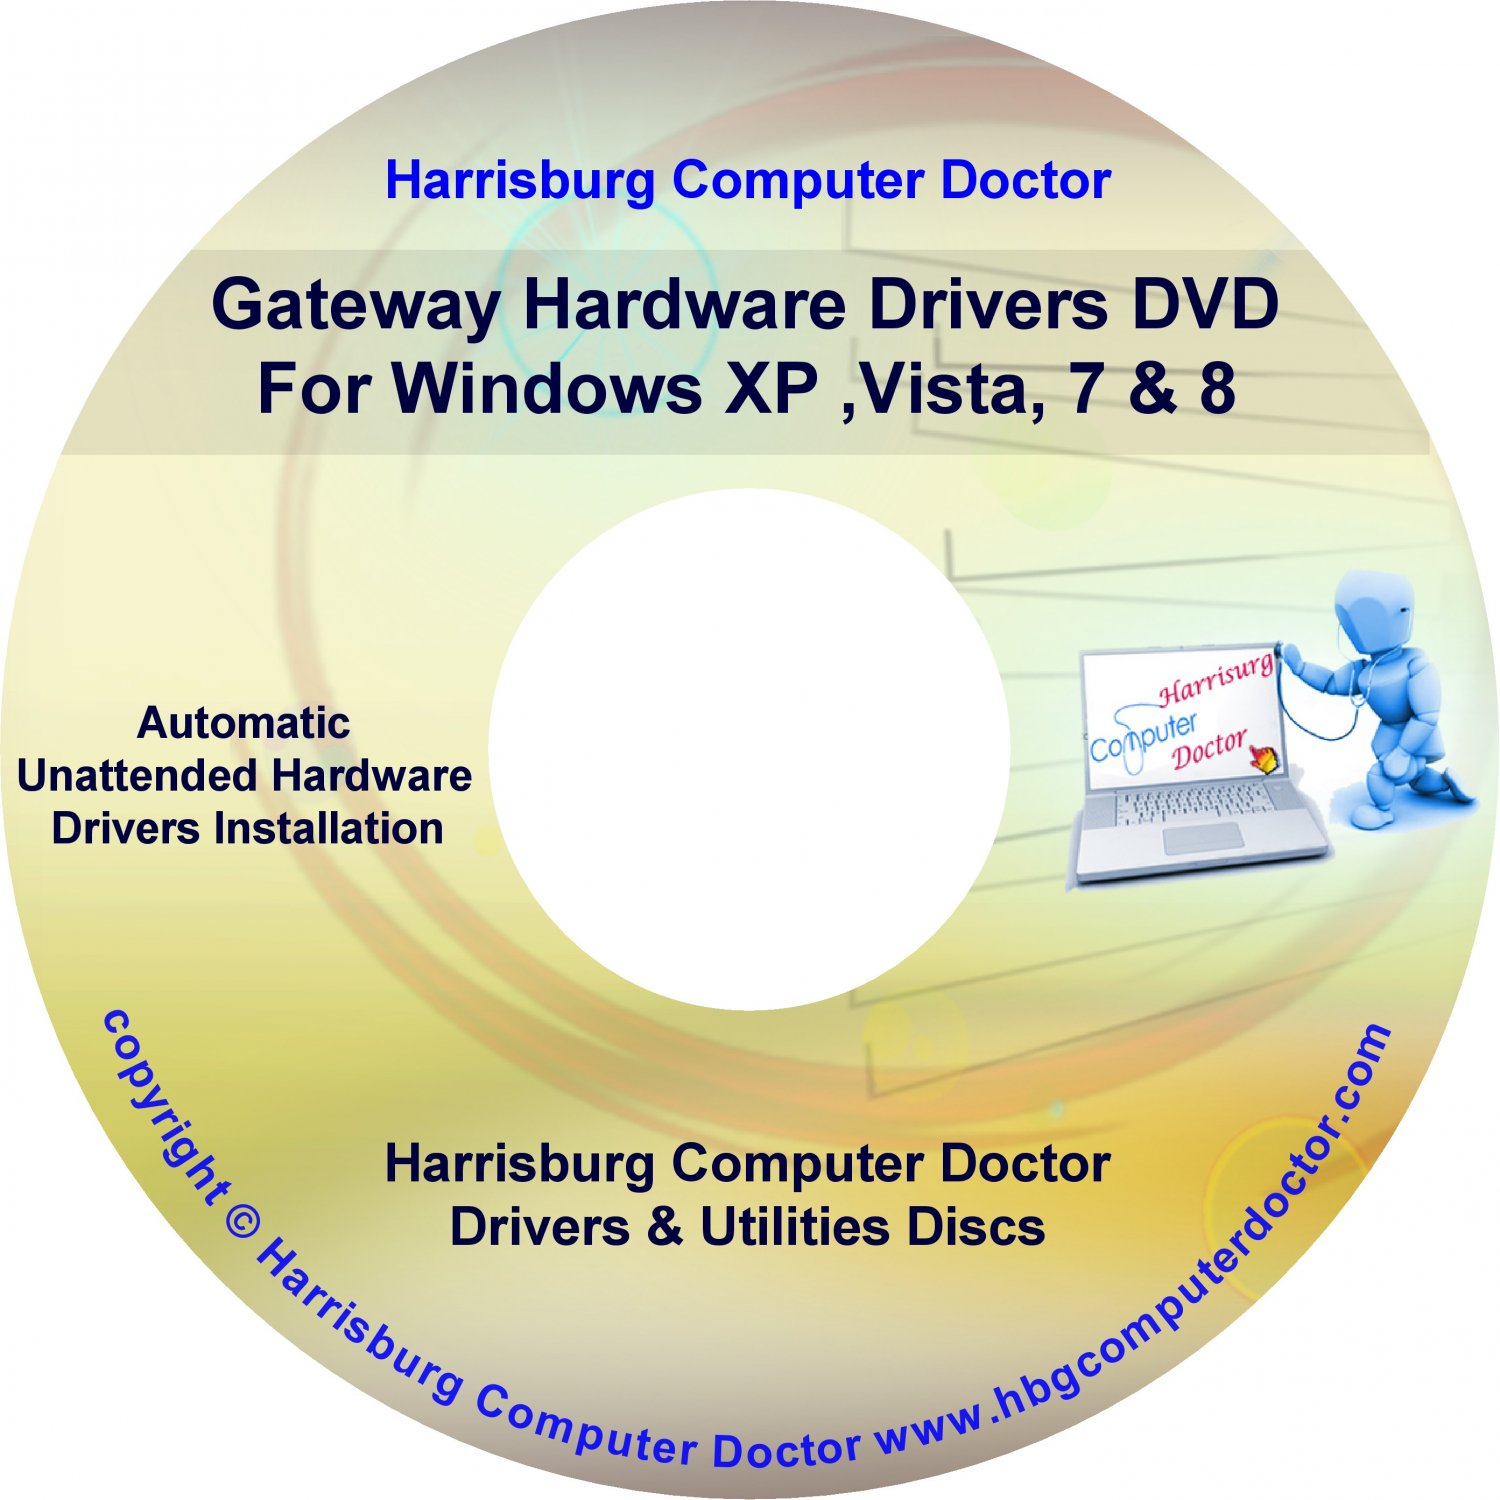 Gateway Solo 3350 Drivers DVD For Windows, XP, Vista, 7 & 8